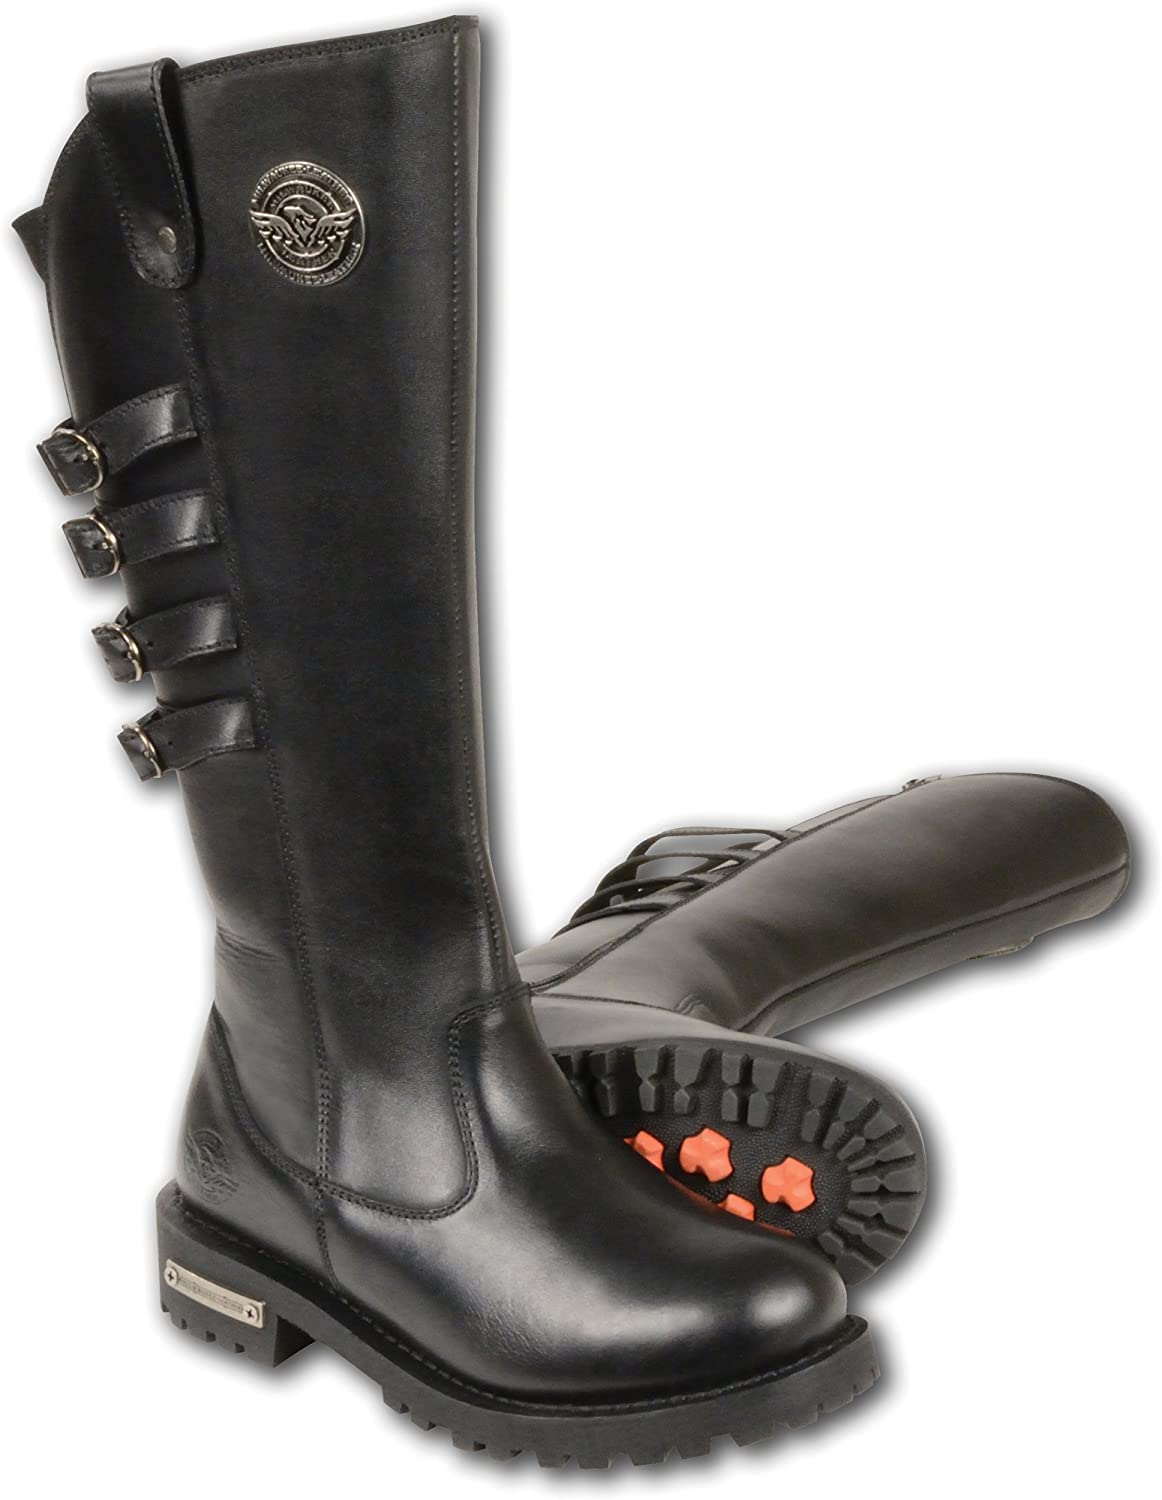 Milwaukee Leather Womens Tall Boots with Buckle Detail Black, Size 10